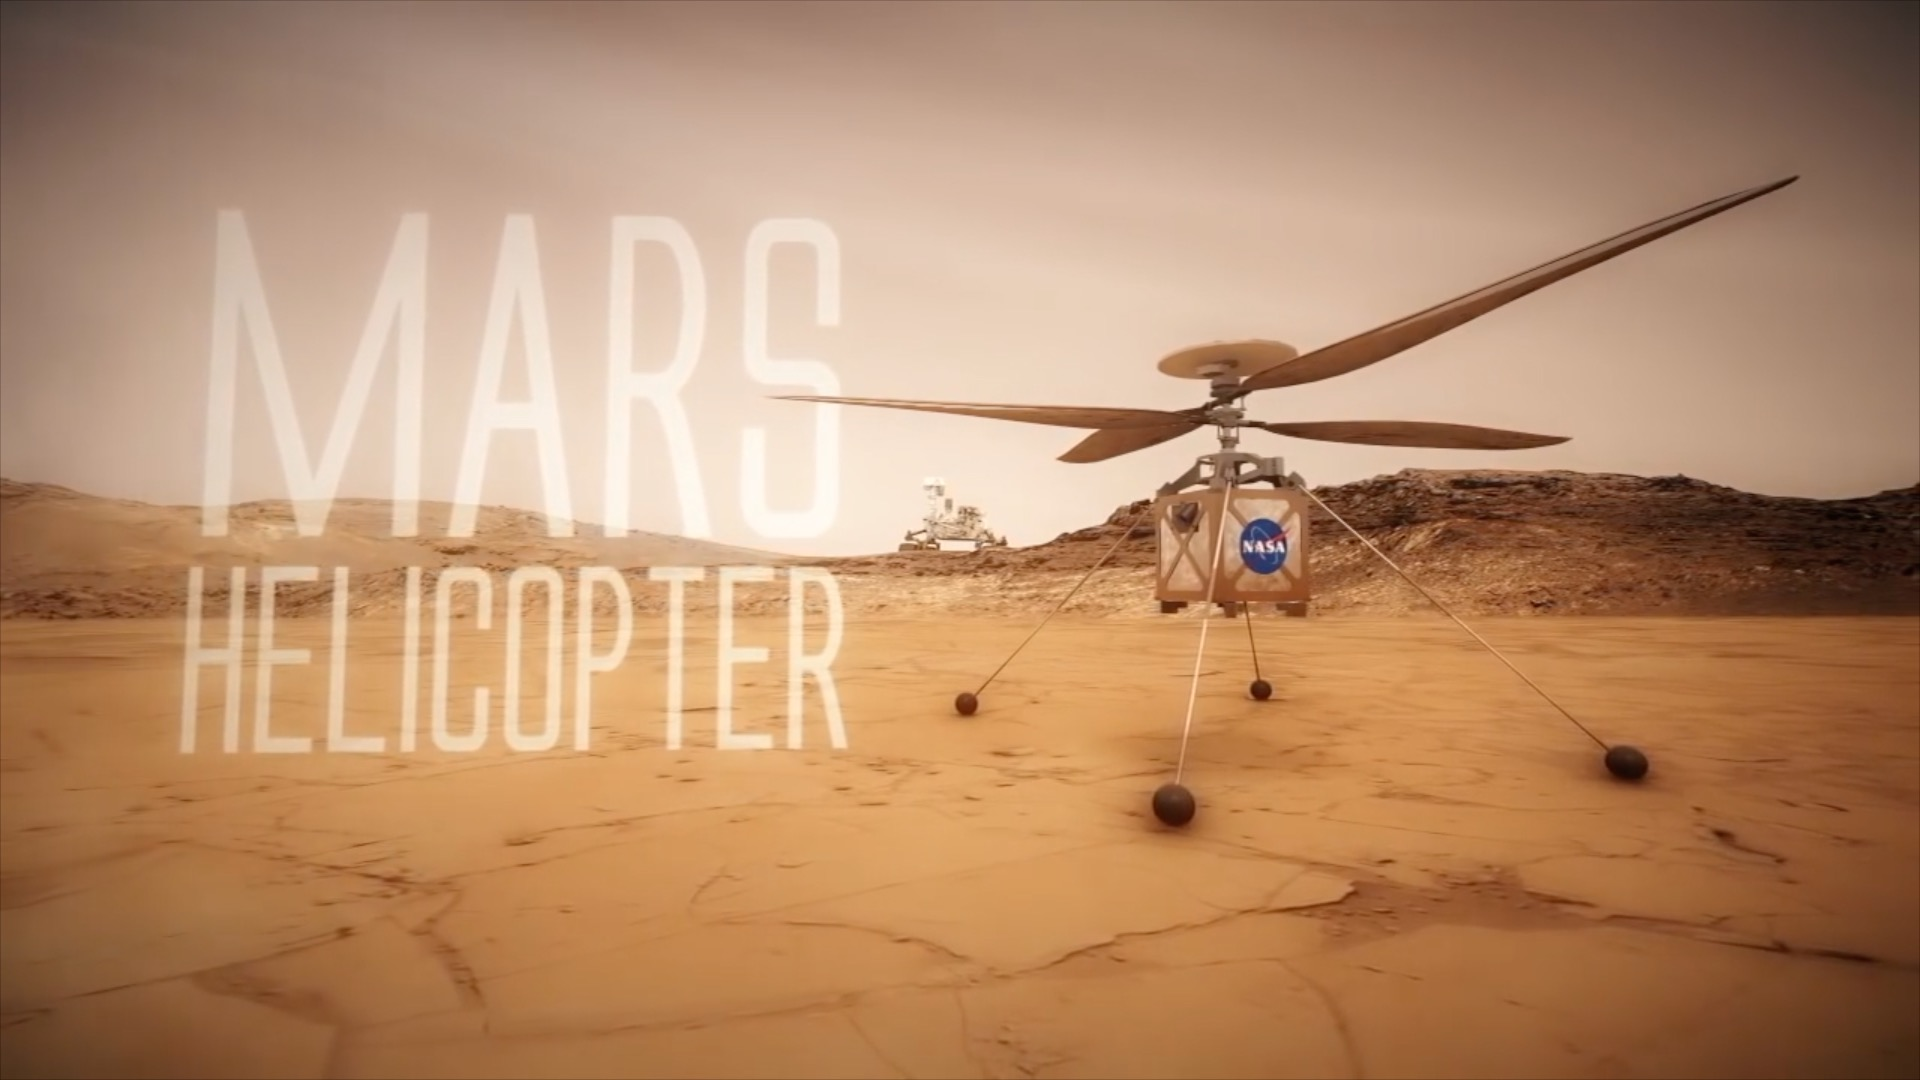 Airbus working on Mars rover to bring soil samples back to Earth